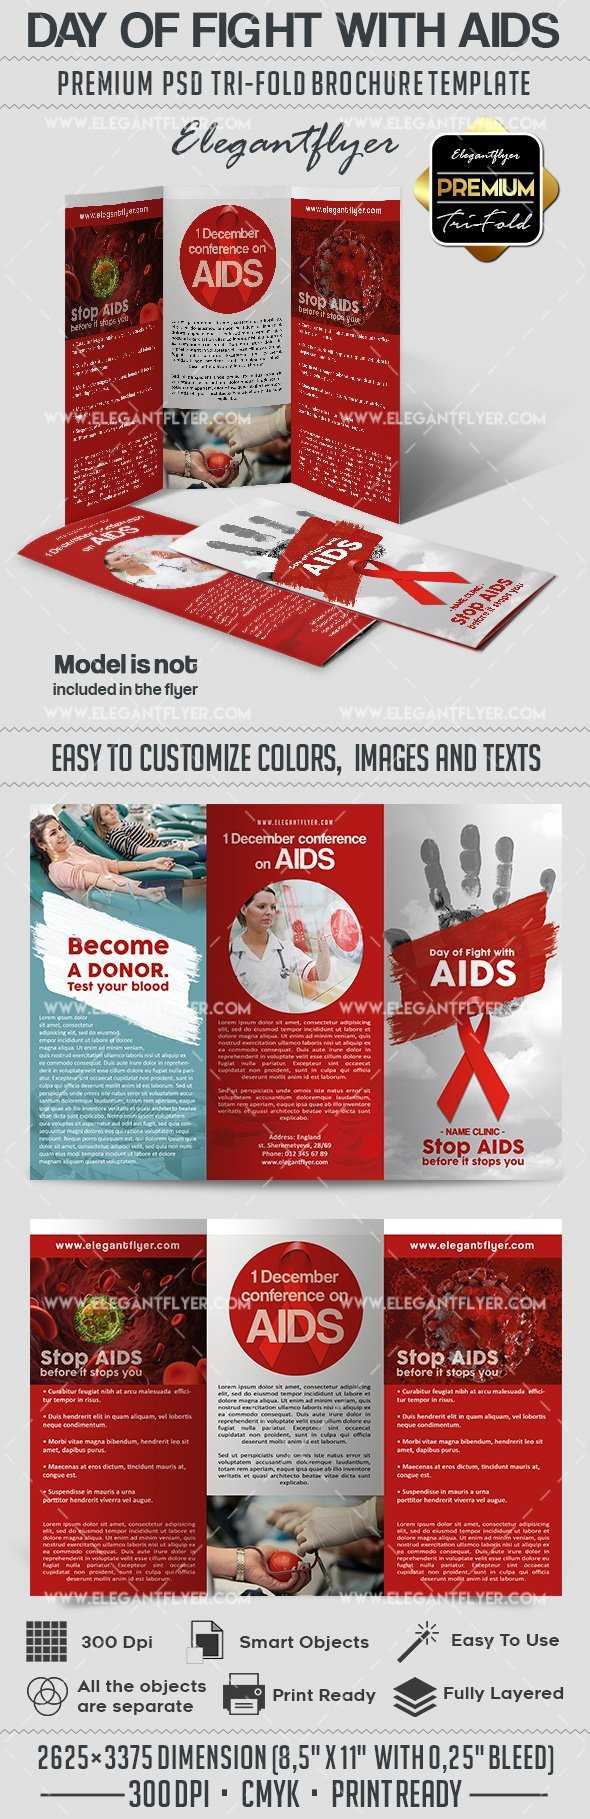 Day Of Fight With Aids Psd Brochure Pertaining To Hiv Aids Brochure Templates